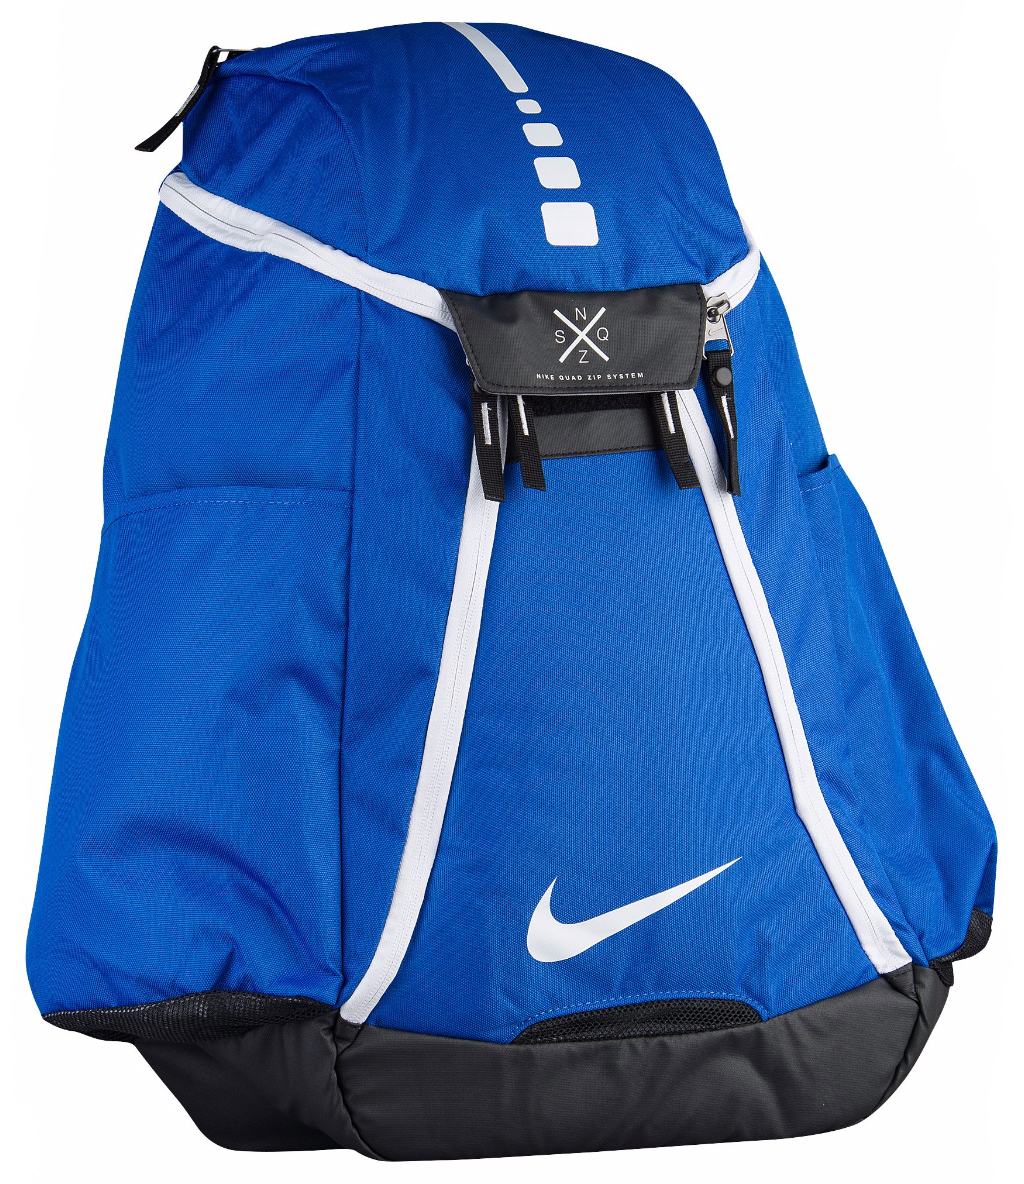 Nike Elite Backpack Ebay | All Basketball Scores Info